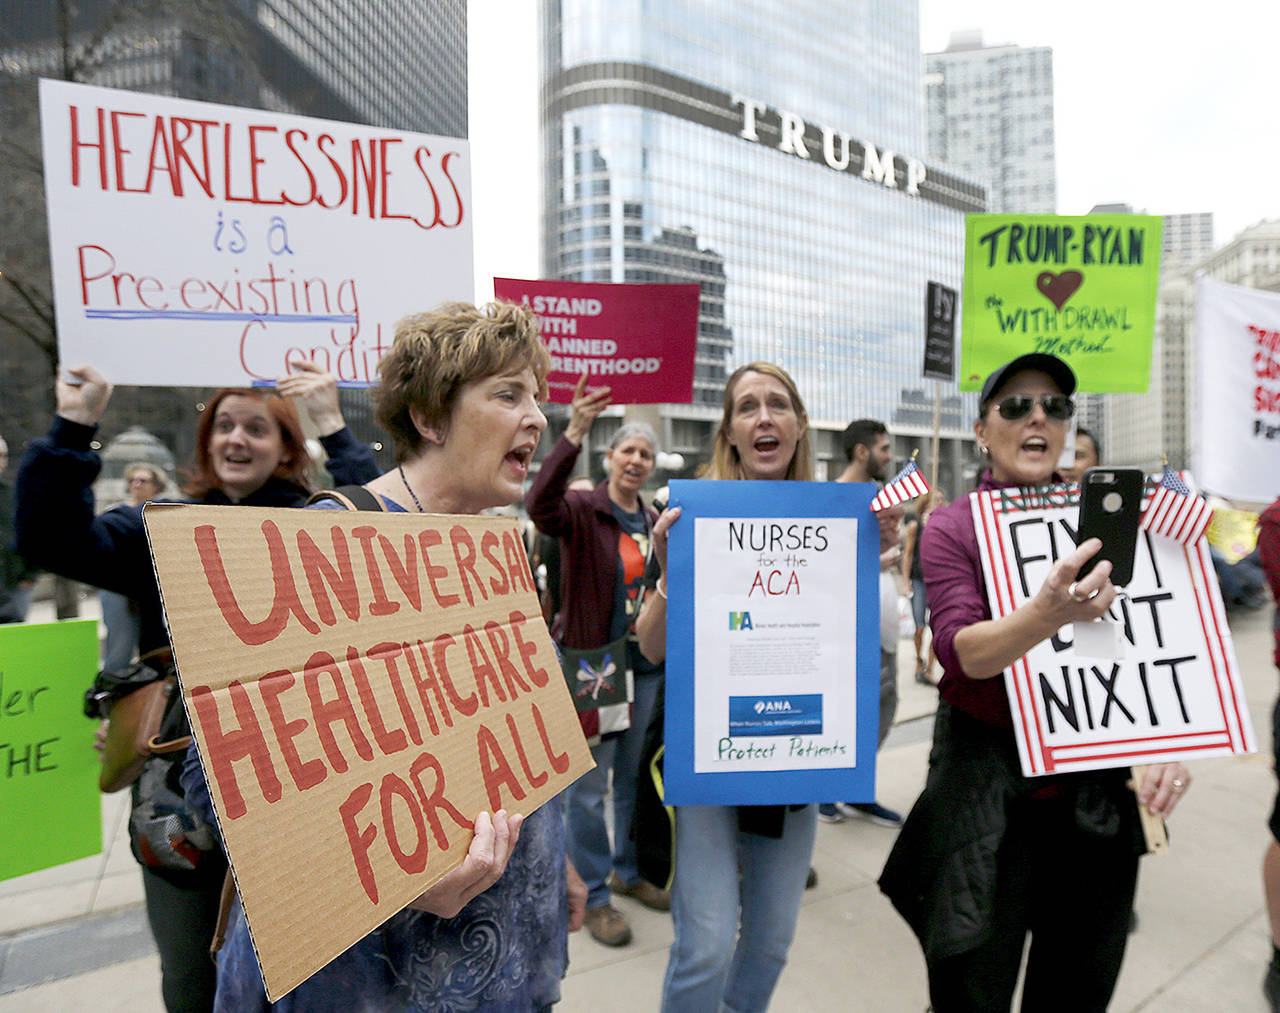 In March 24 photo, protesters gather across the Chicago River from Trump Tower to rally against the repeal of the Affordable Care Act, in Chicago. (AP Photo/Charles Rex Arbogast, File)